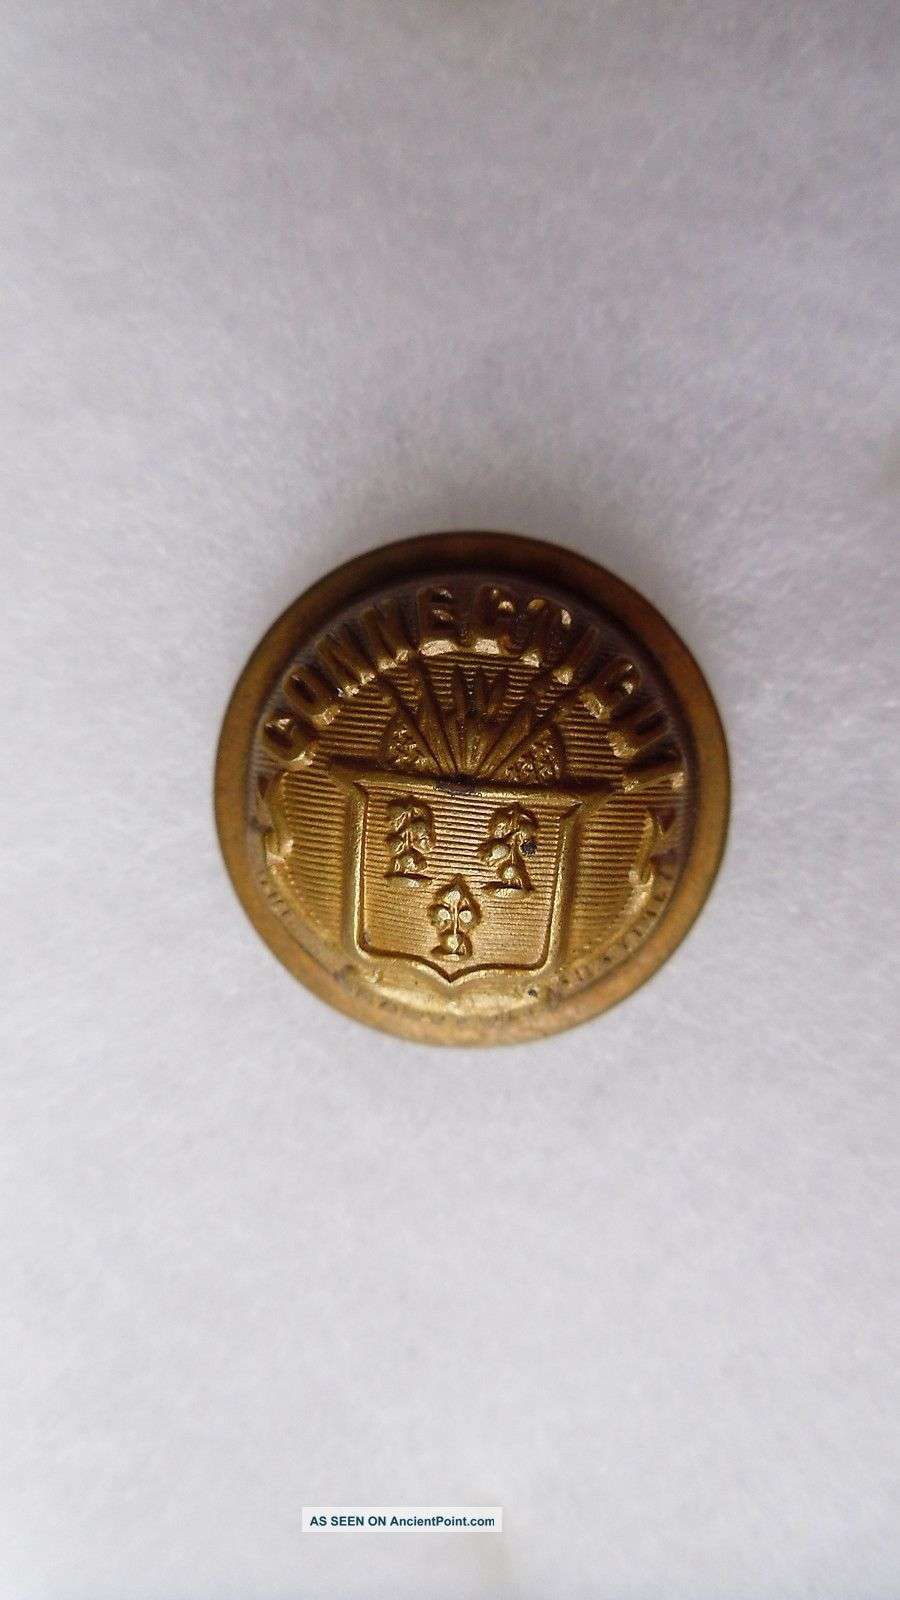 Antique Connecticut State Seal Coat Button Goodwins Pat July 27,  1875 23 Mm Buttons photo